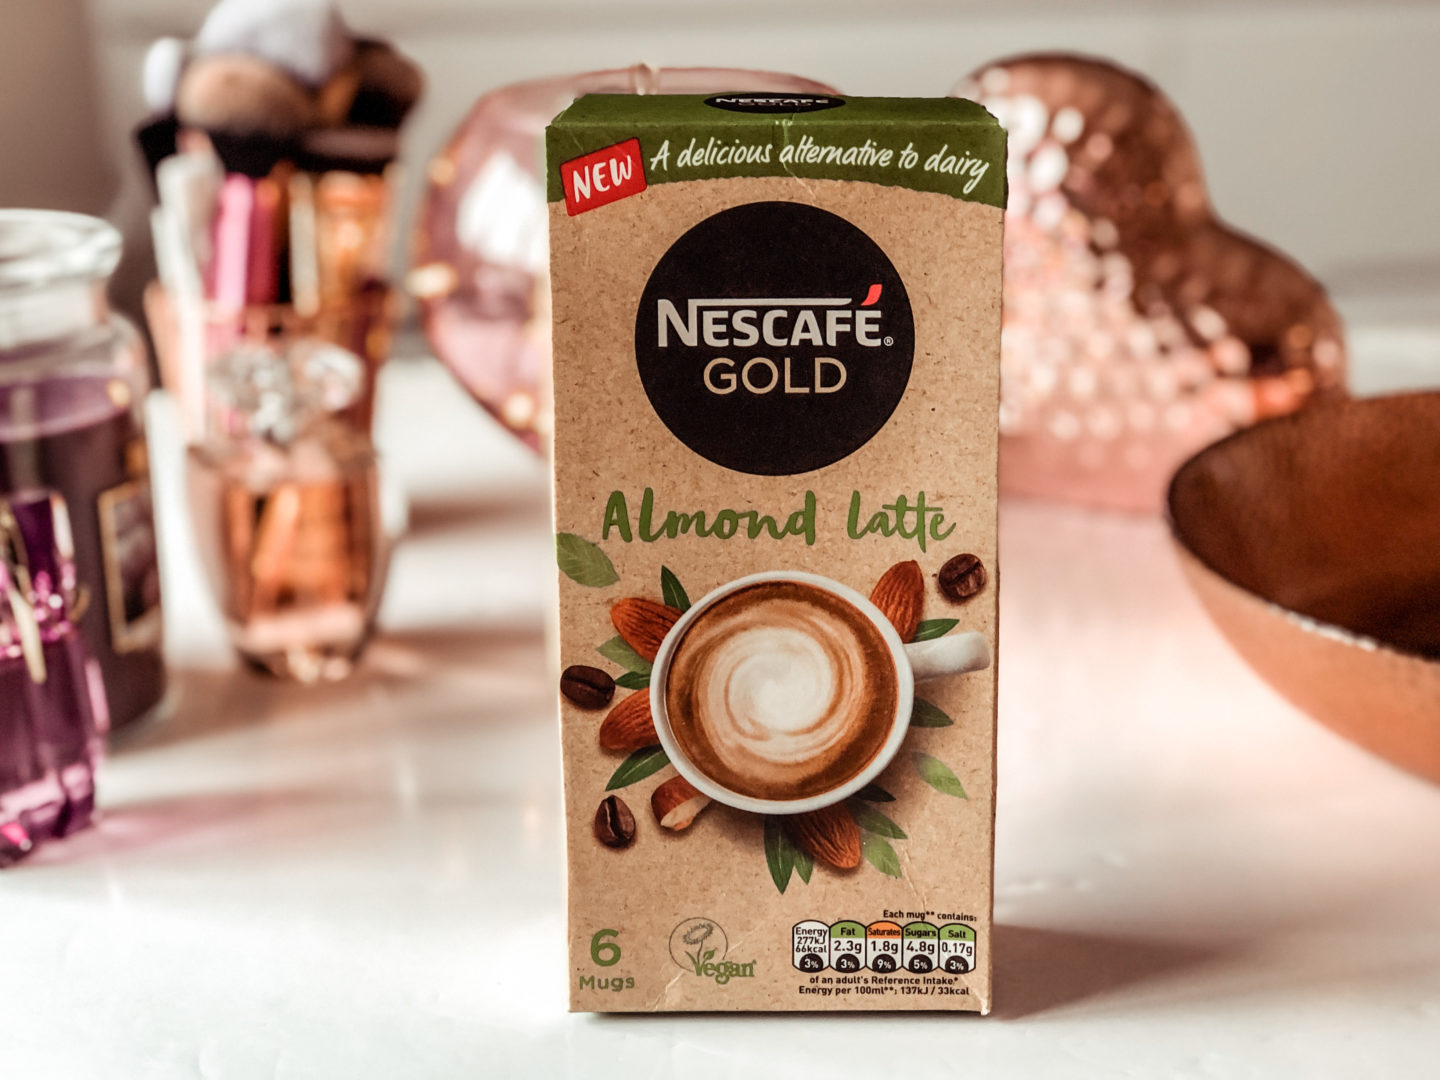 NESCAFÉ GOLD Almond Latte